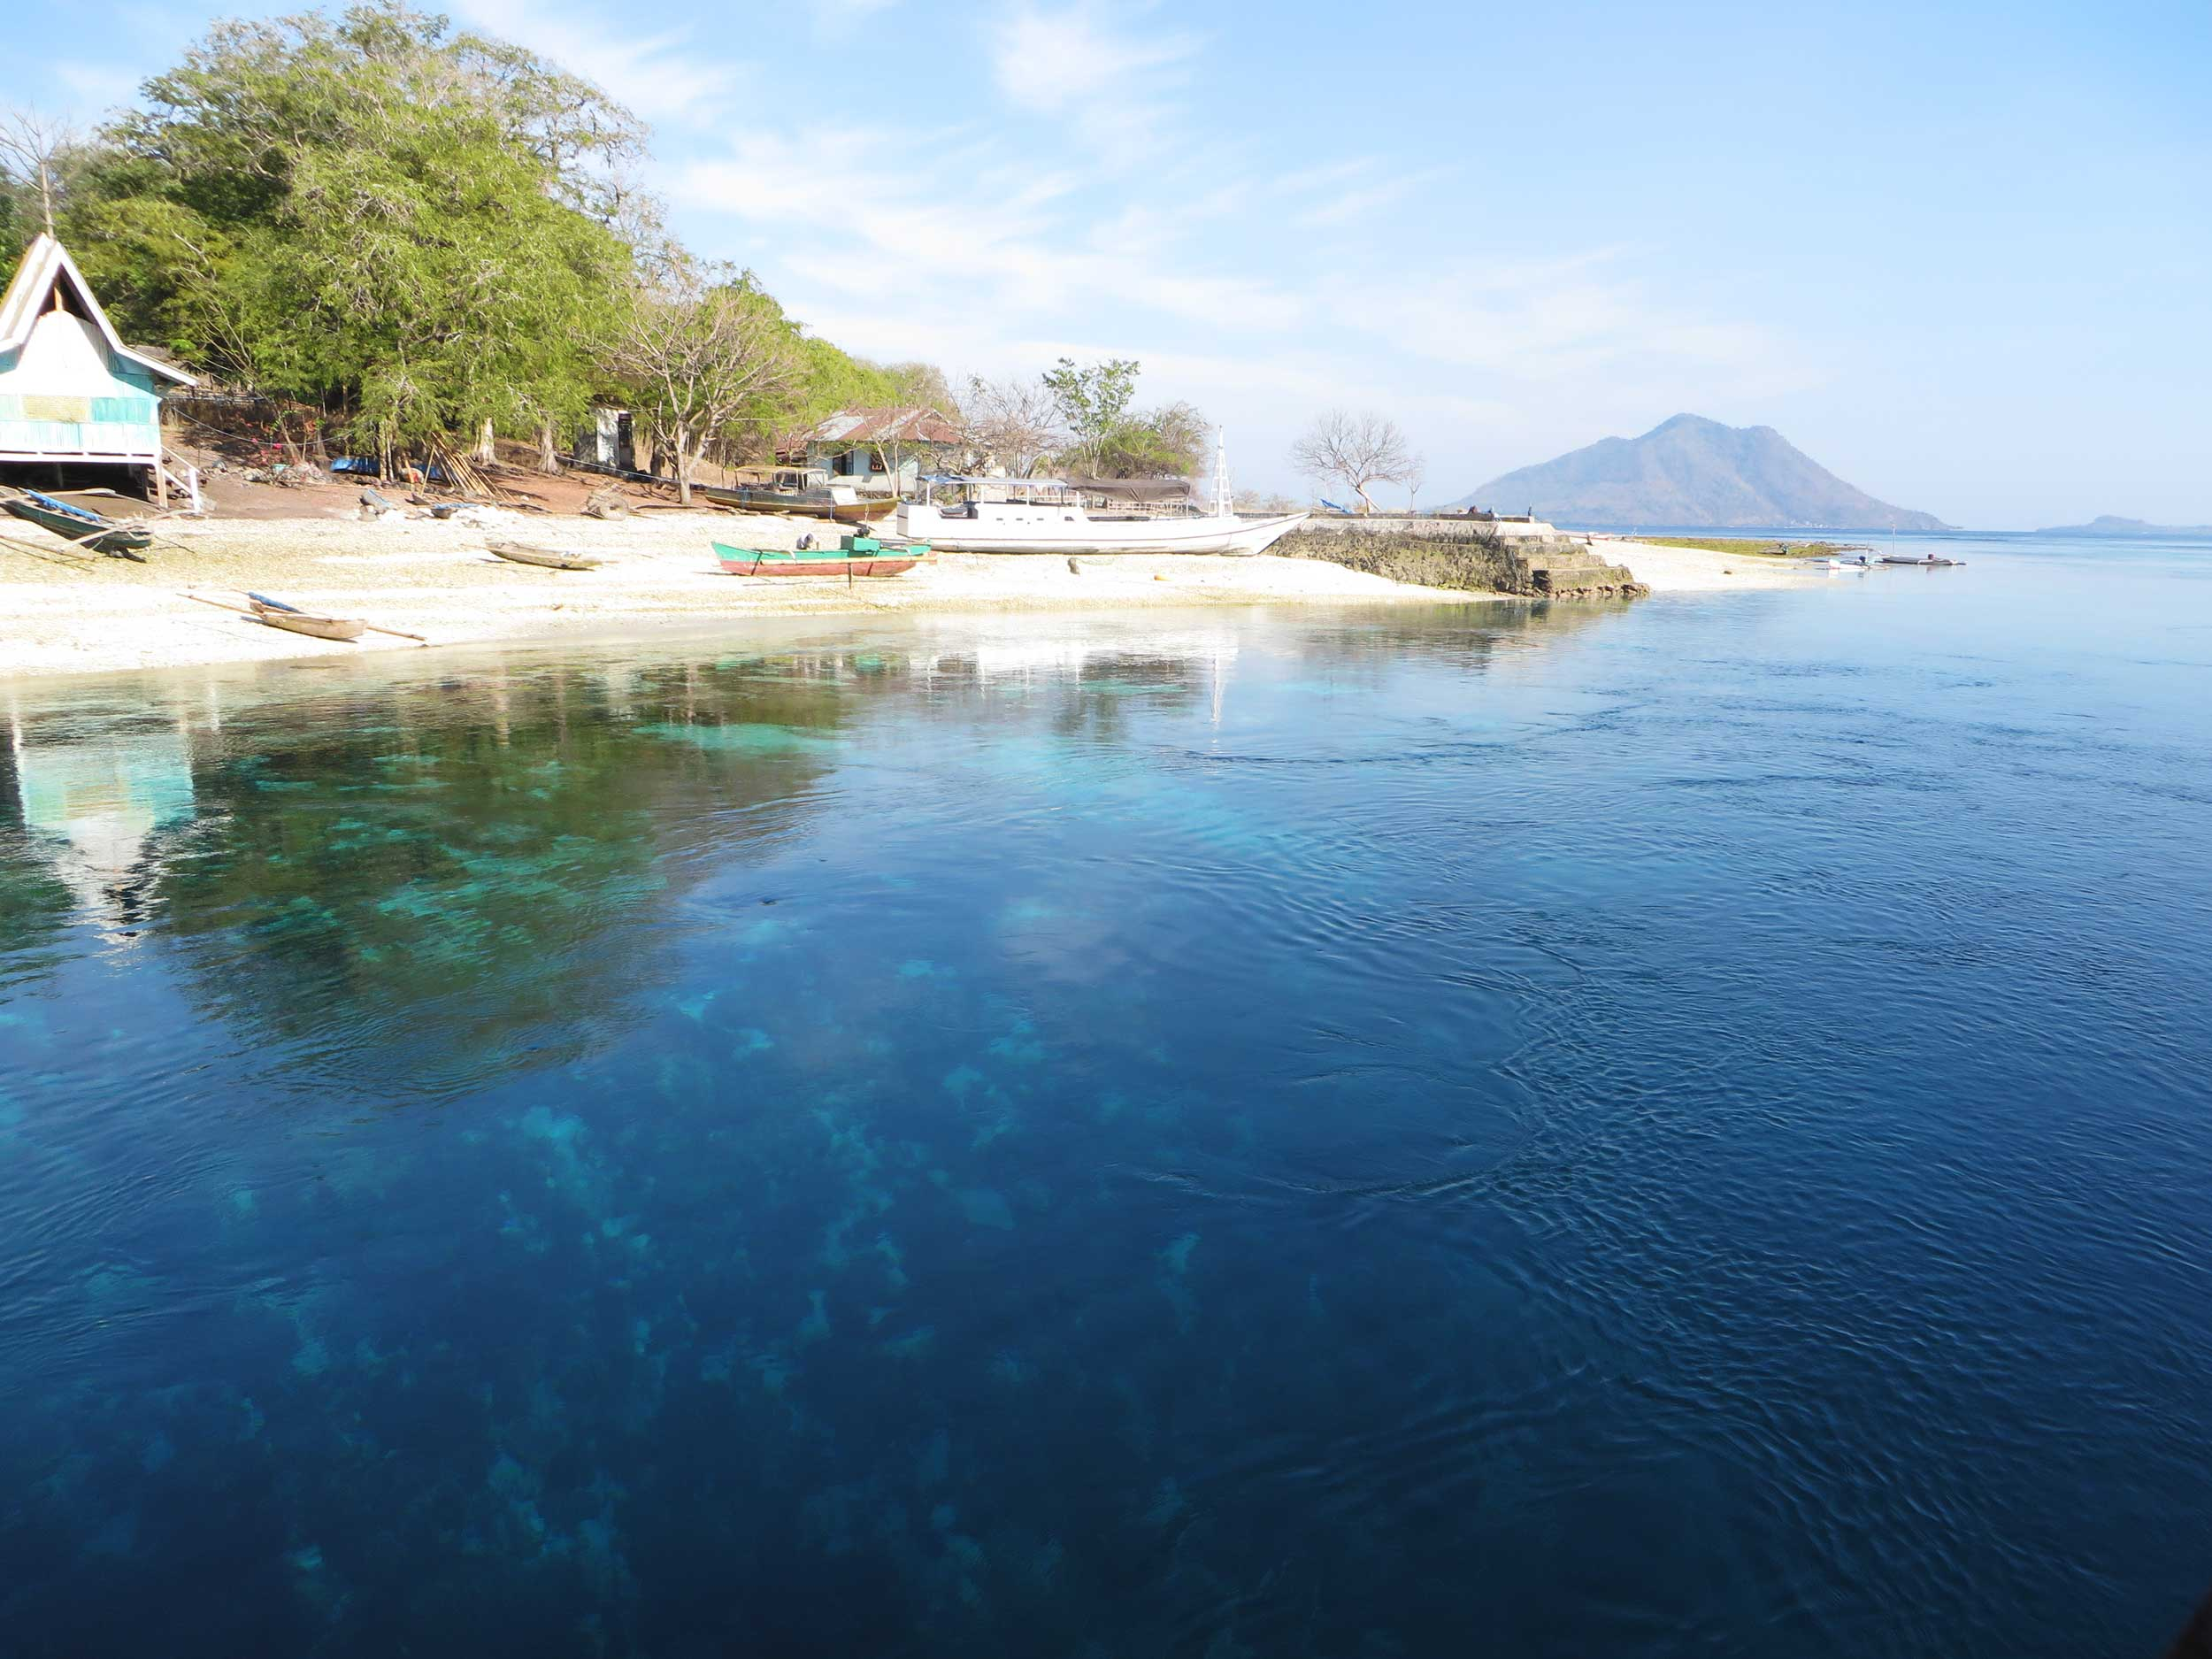 View over deep blue water to a sandy beachwith beached boats and green trees, West Timor